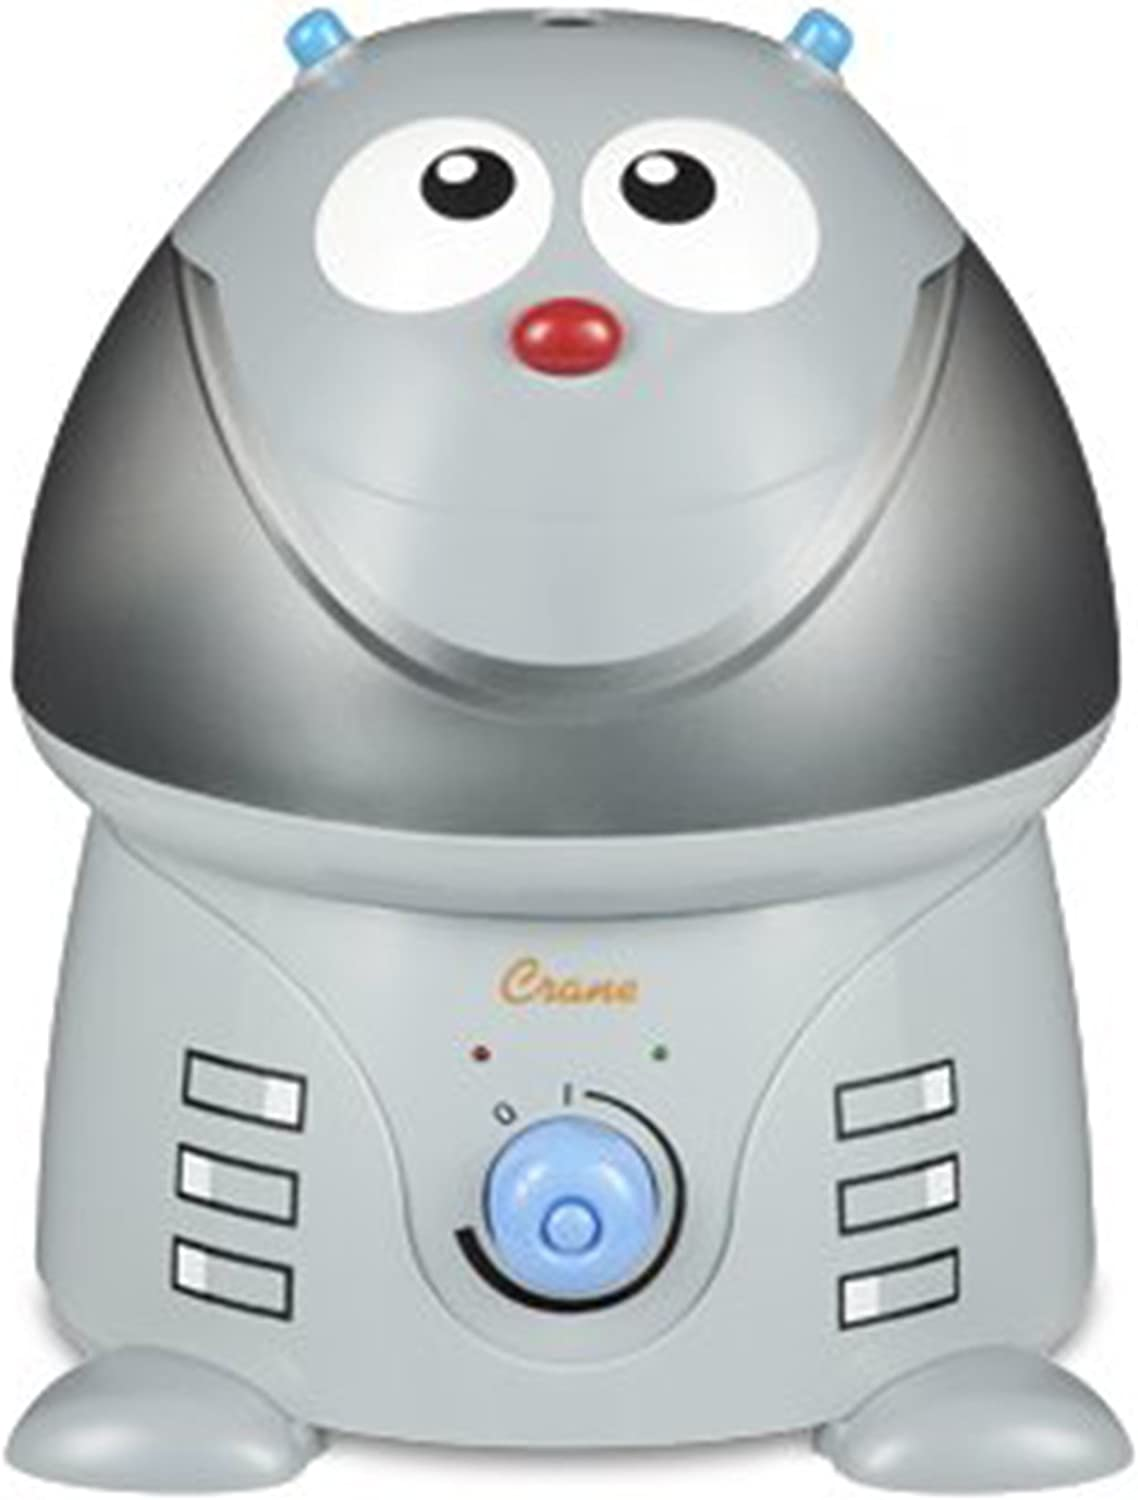 Crane USA Filter-Free Cool Mist Humidifiers for Kids, Robot